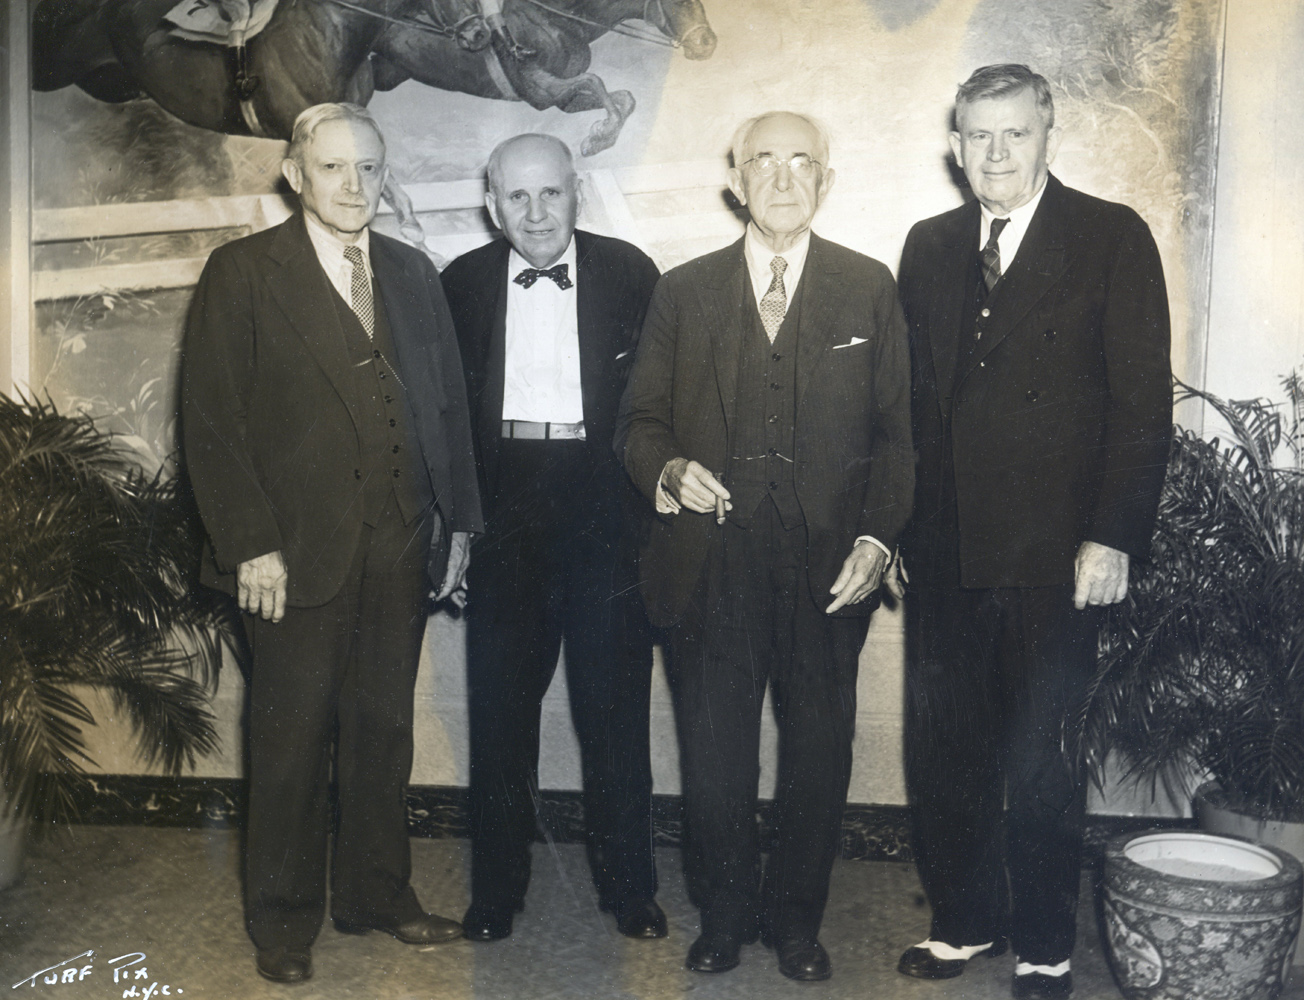 Hall of Fame trainers Henry McDaniel, James Fitzsimmons, Andrew Jack Joyner, and T. J. Healey in Saratoga in 1939 (TurfPix/Museum Collection)